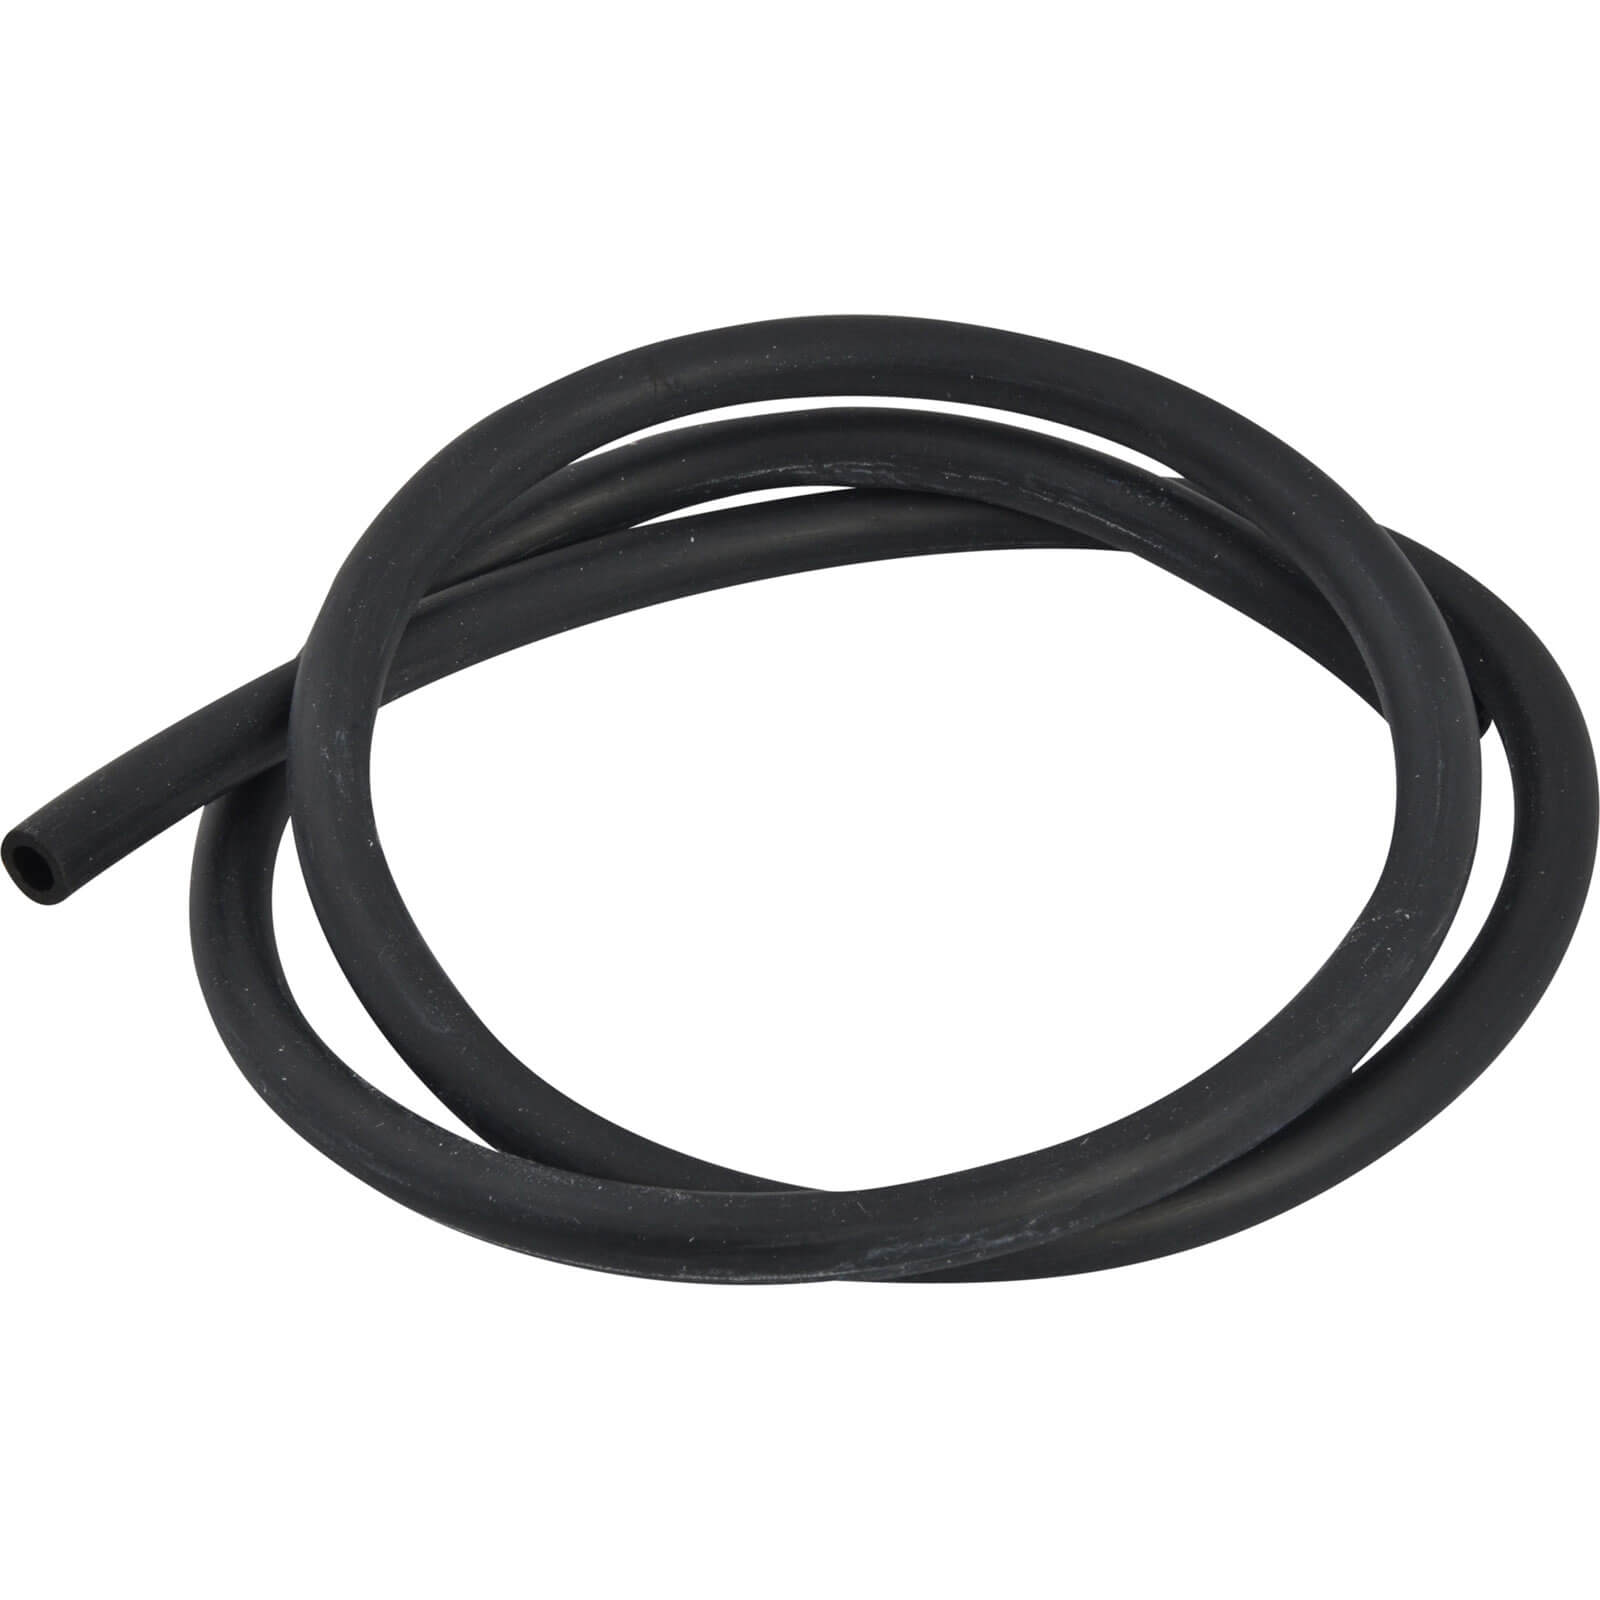 Image of Monument 1277S Spare Hose For Gas Testing Equipment 1000mm